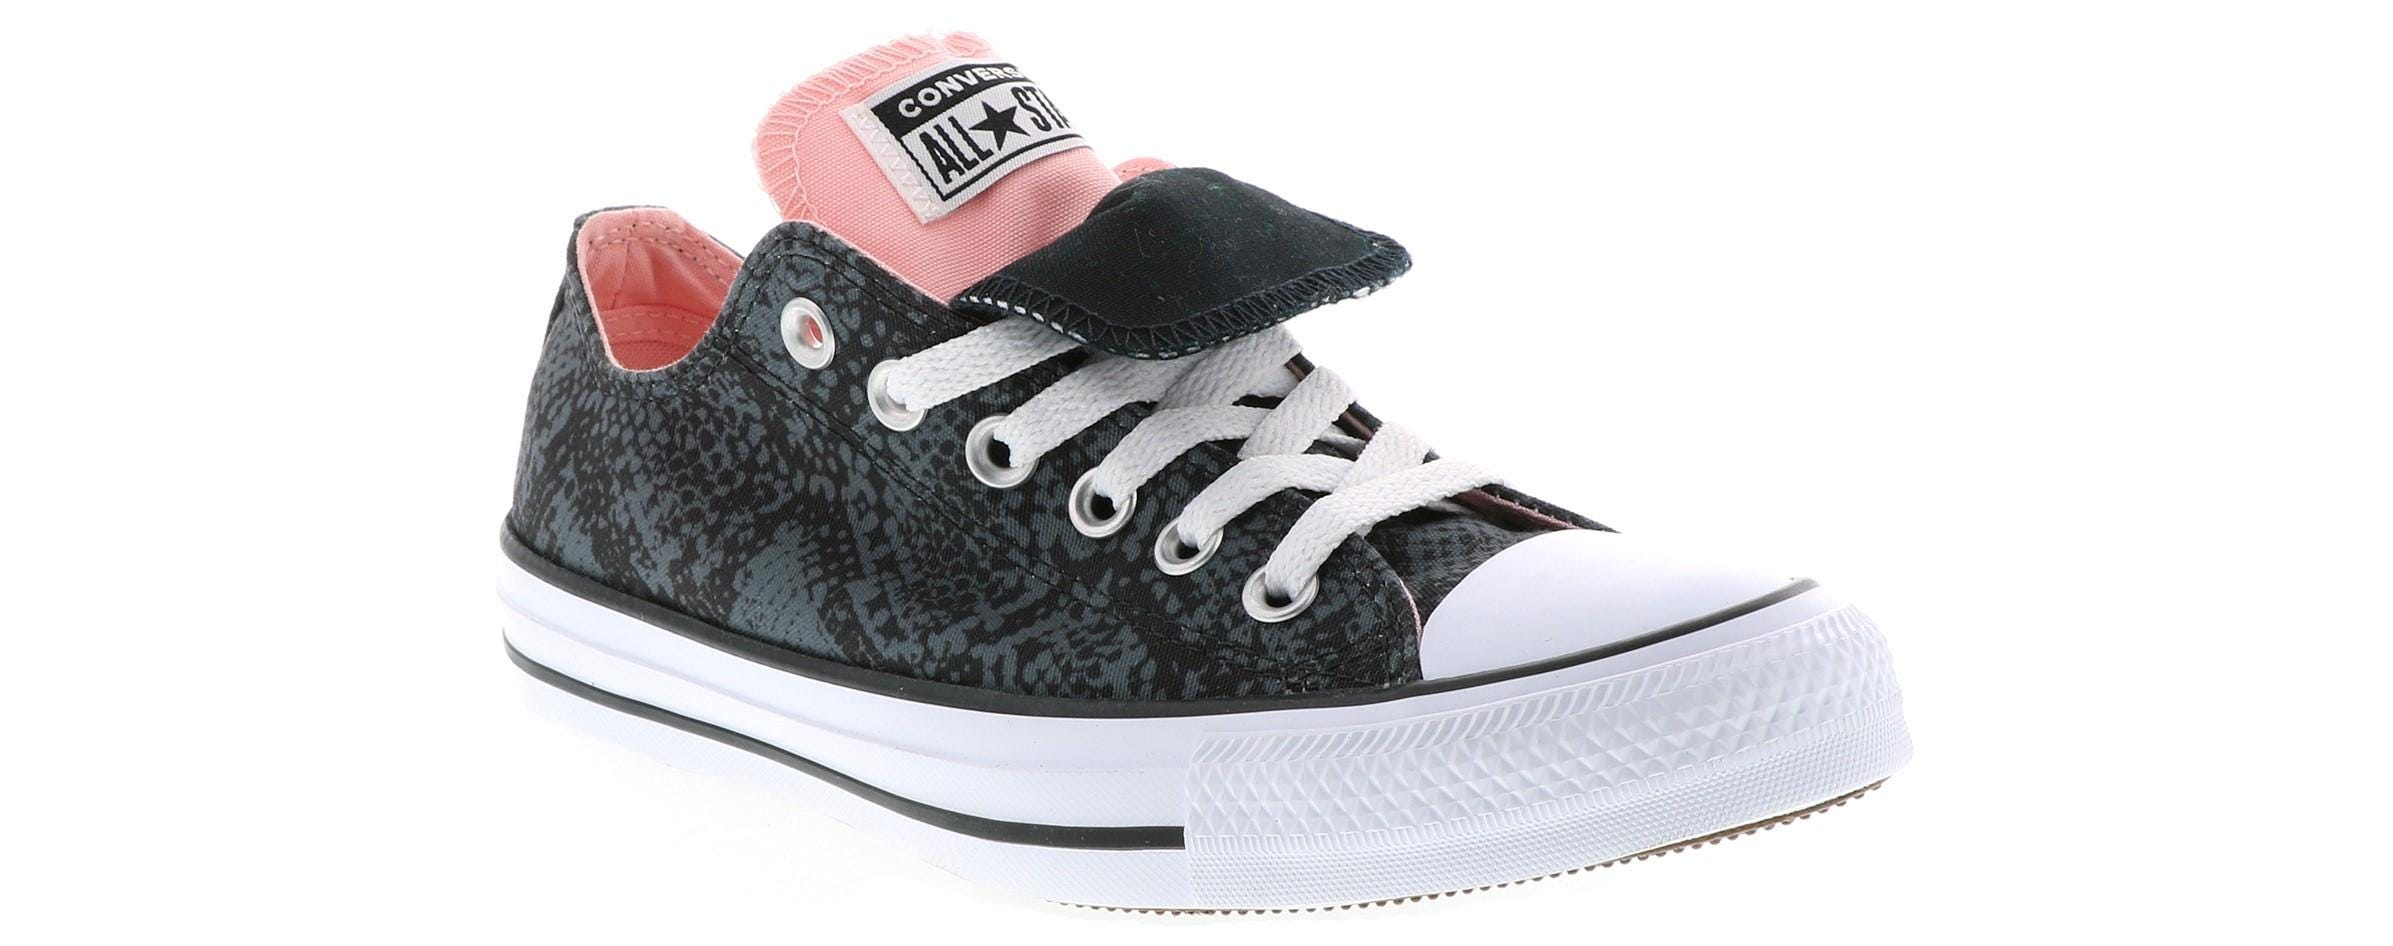 converse double tongue